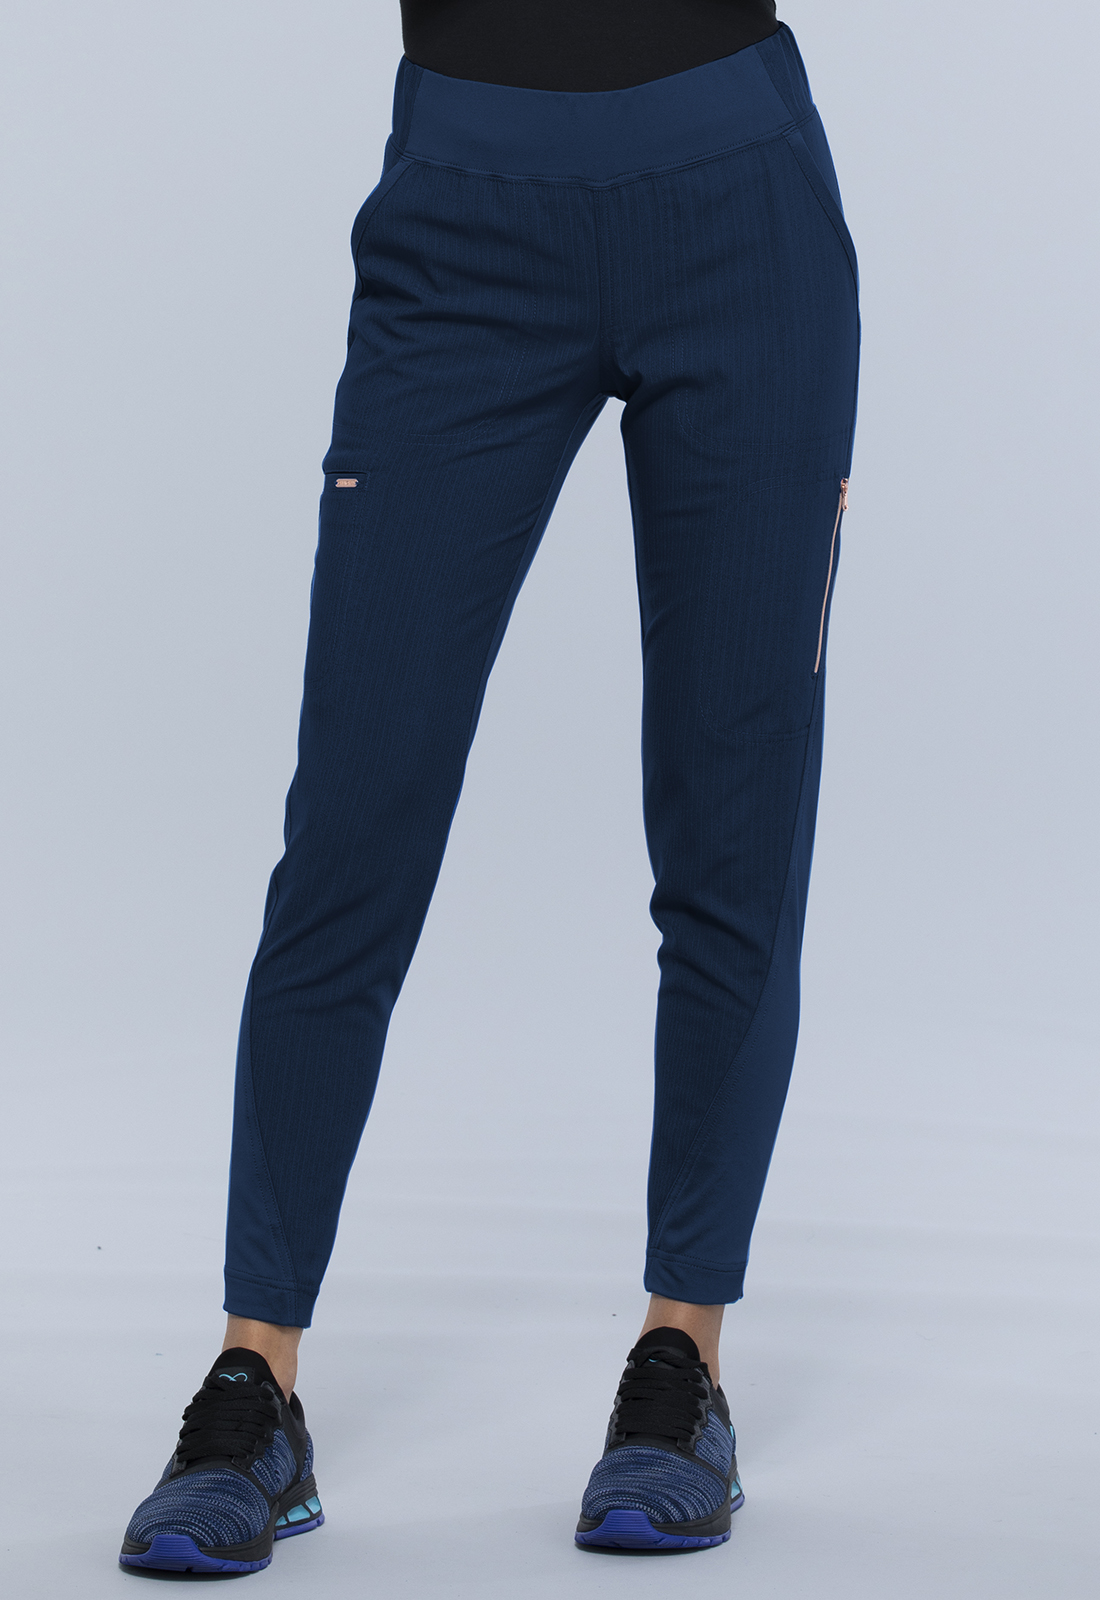 Mid-Rise Tapered Leg Pull-on Pant